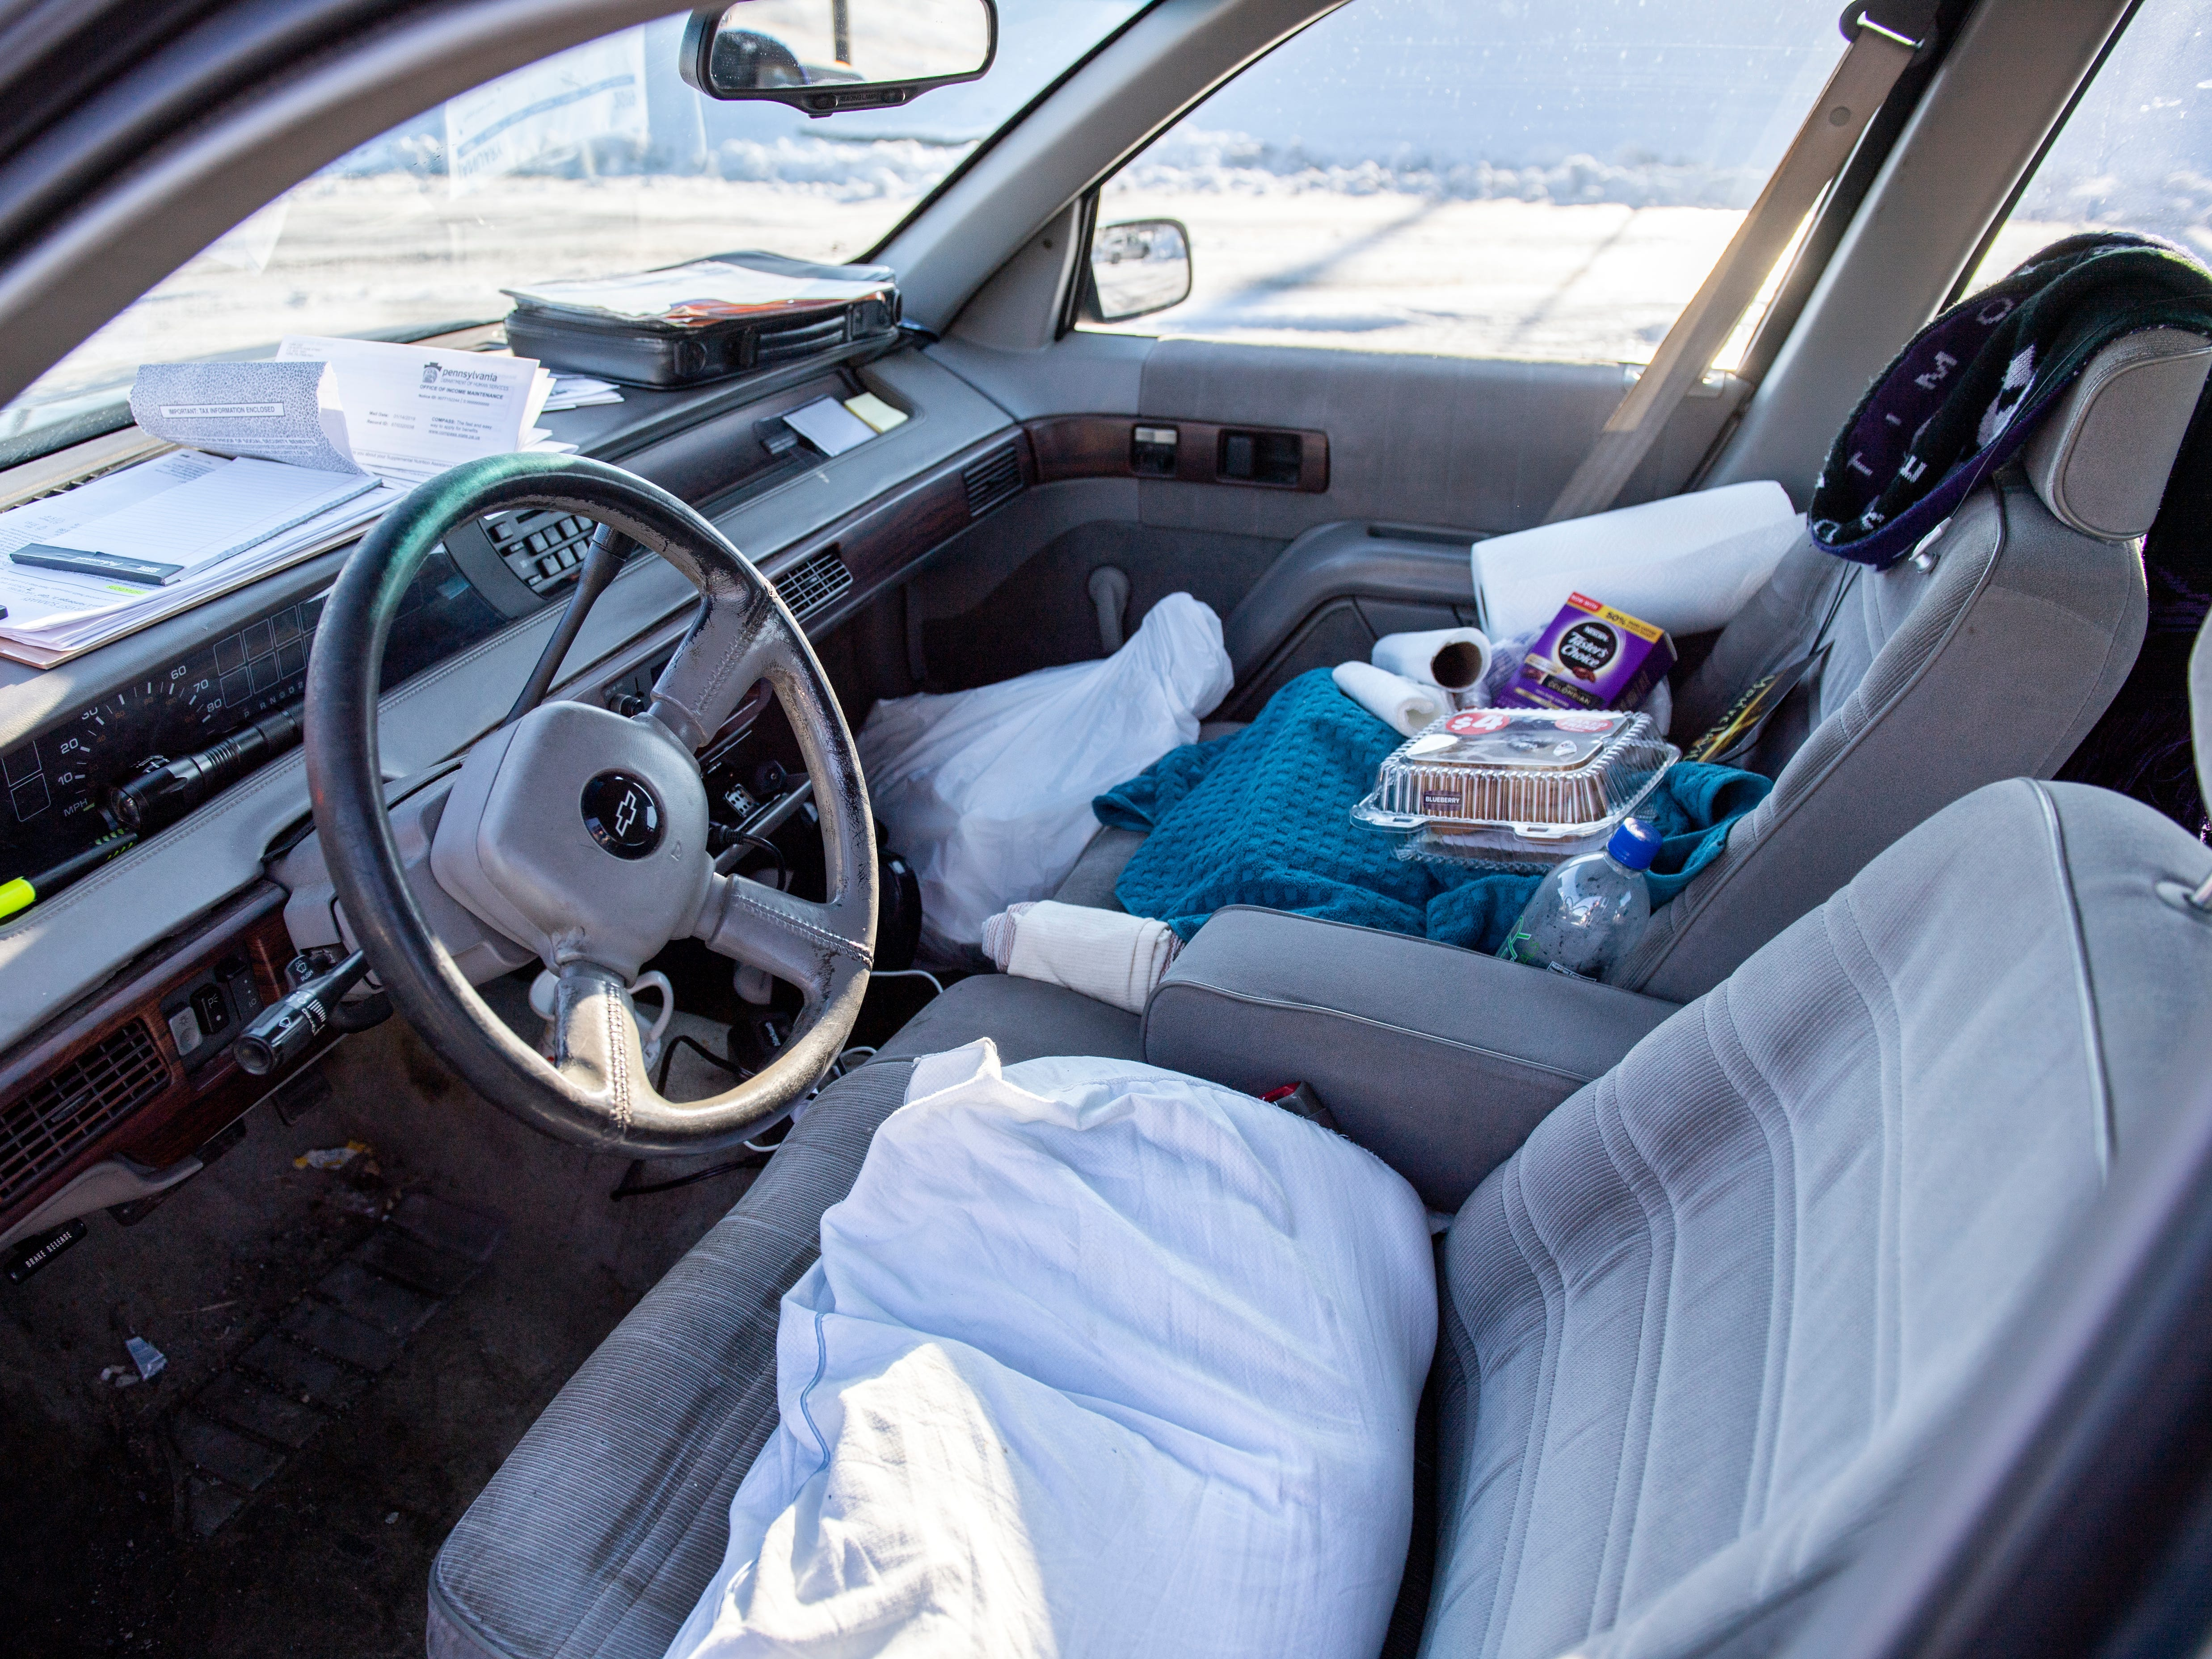 Glen Hamberger, 66, calls his 1994 Chevy Lumina home. It's where he has slept, eaten and passed the time, on-and-off since November, but he hopes to be employed again soon.